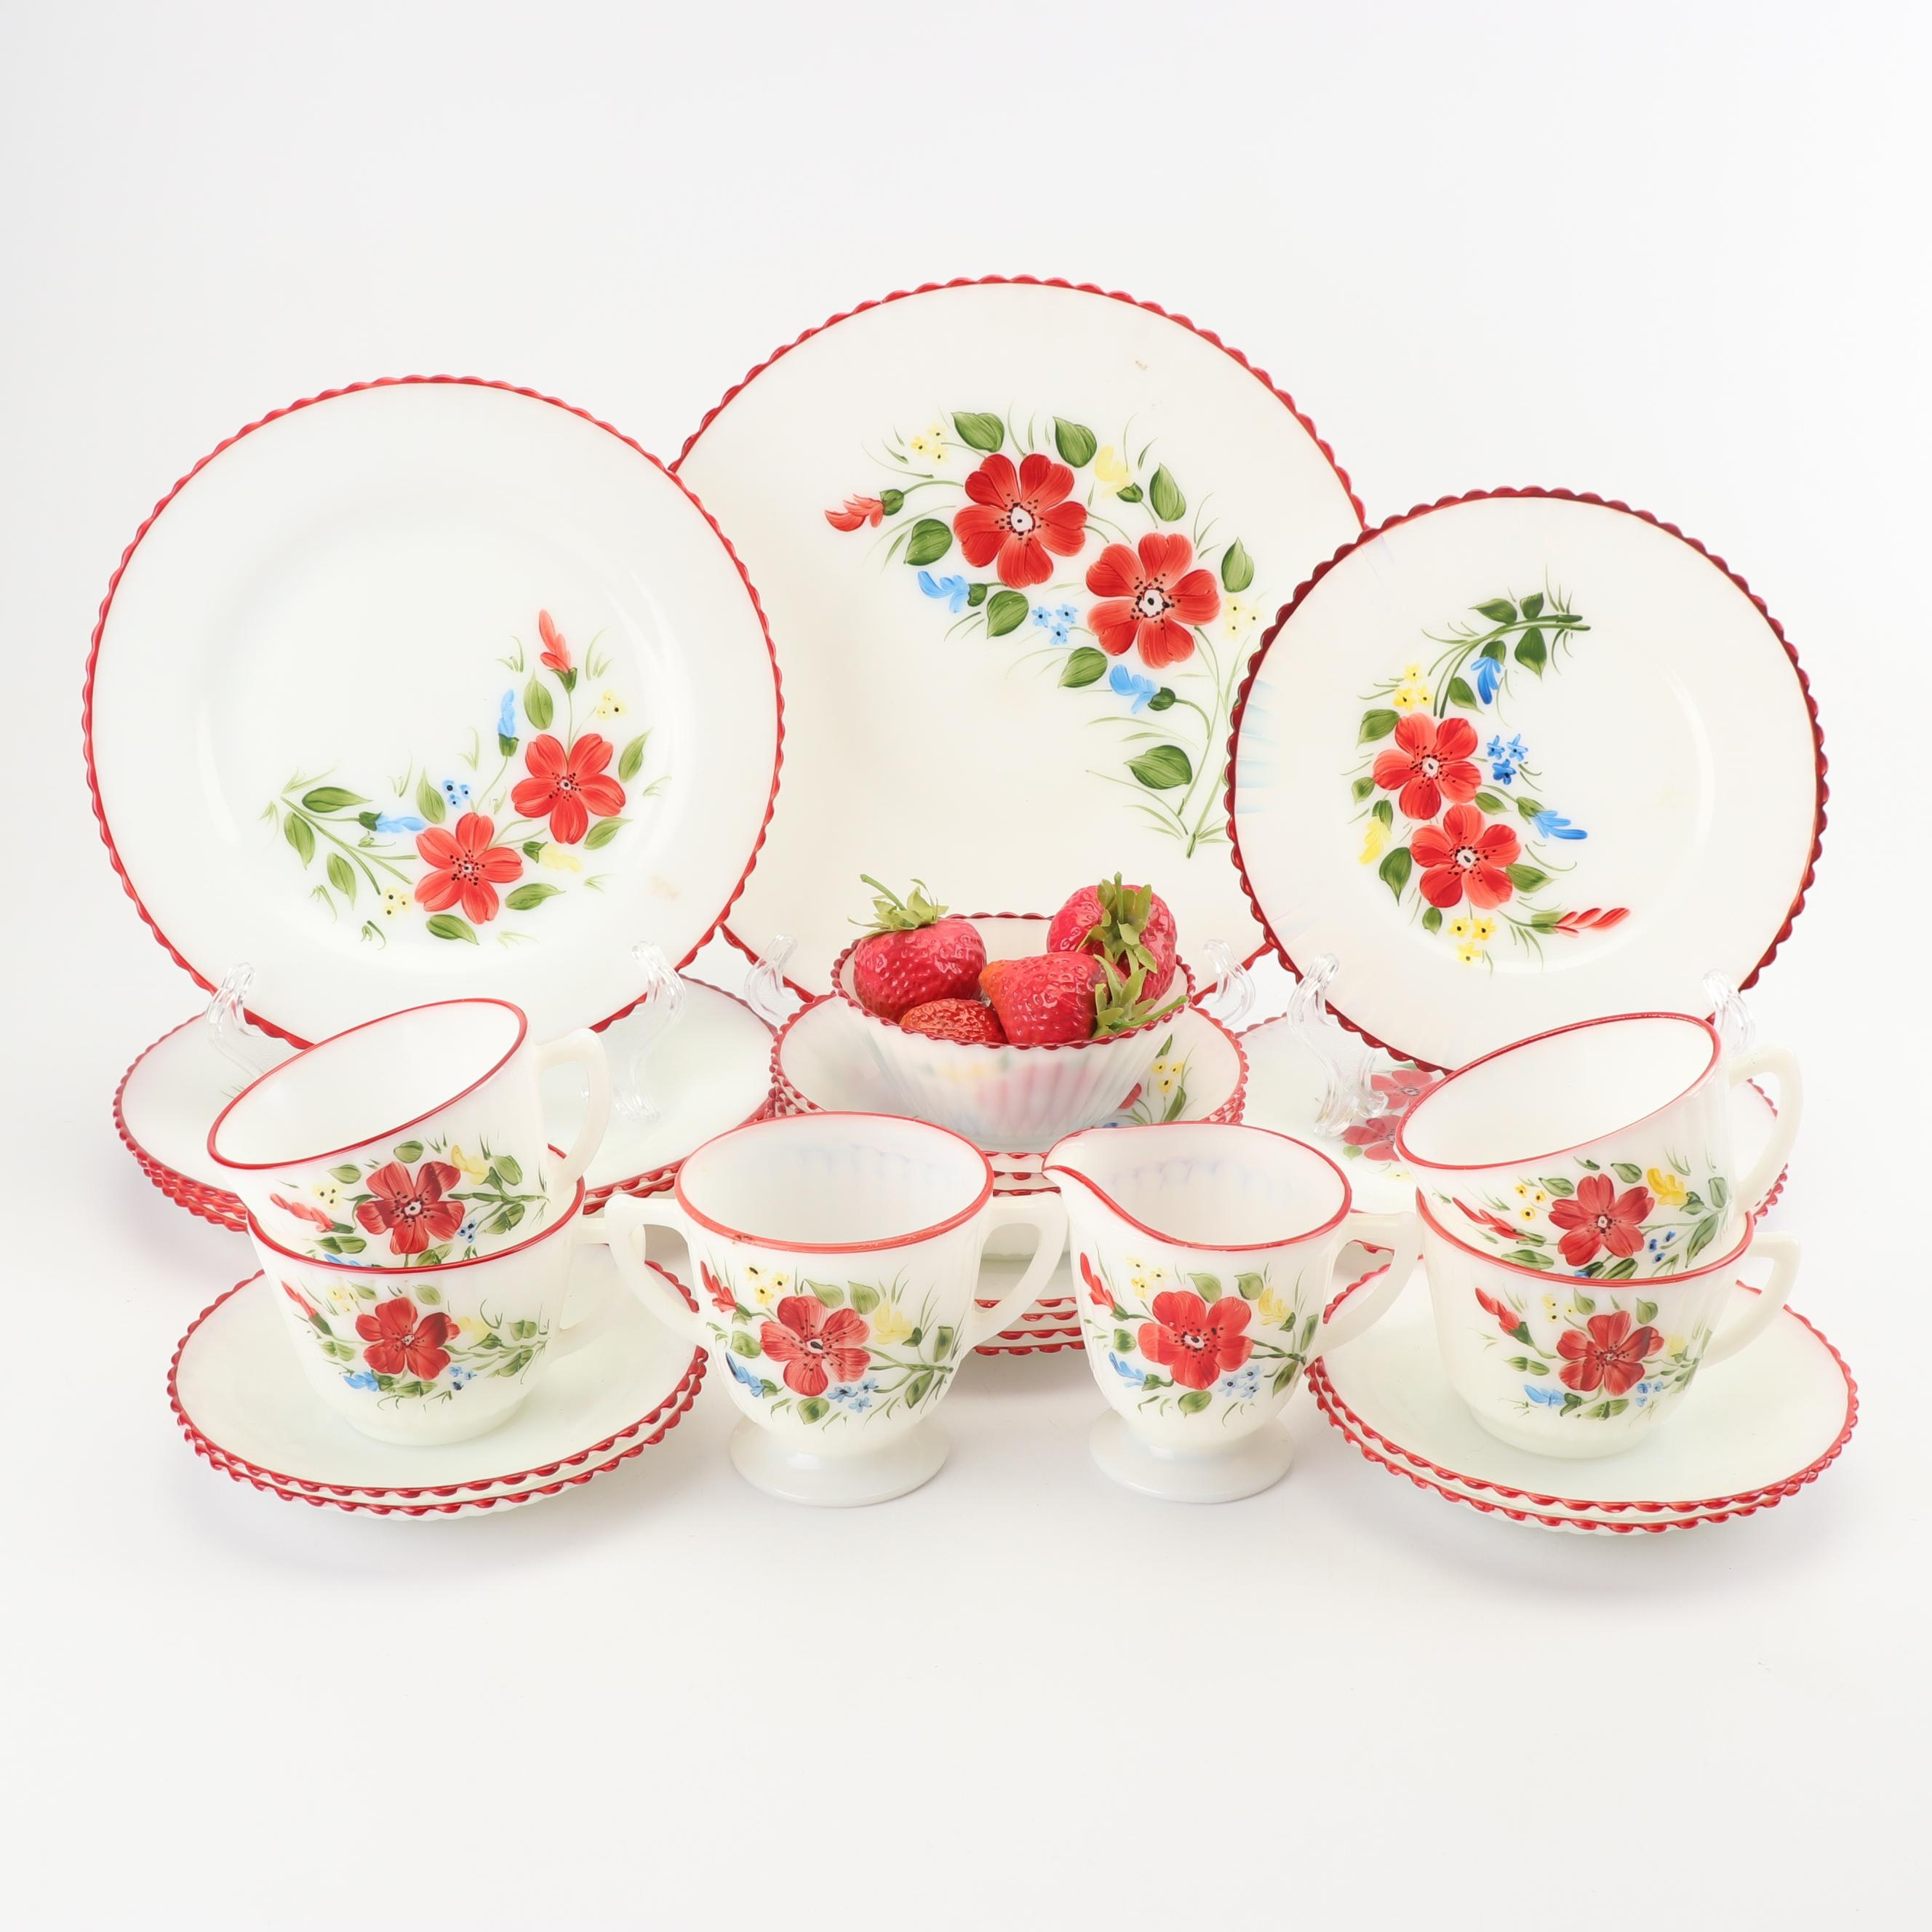 Hand-Painted Floral Motif Milk Glass Dinnerware Service for Four, 1950's